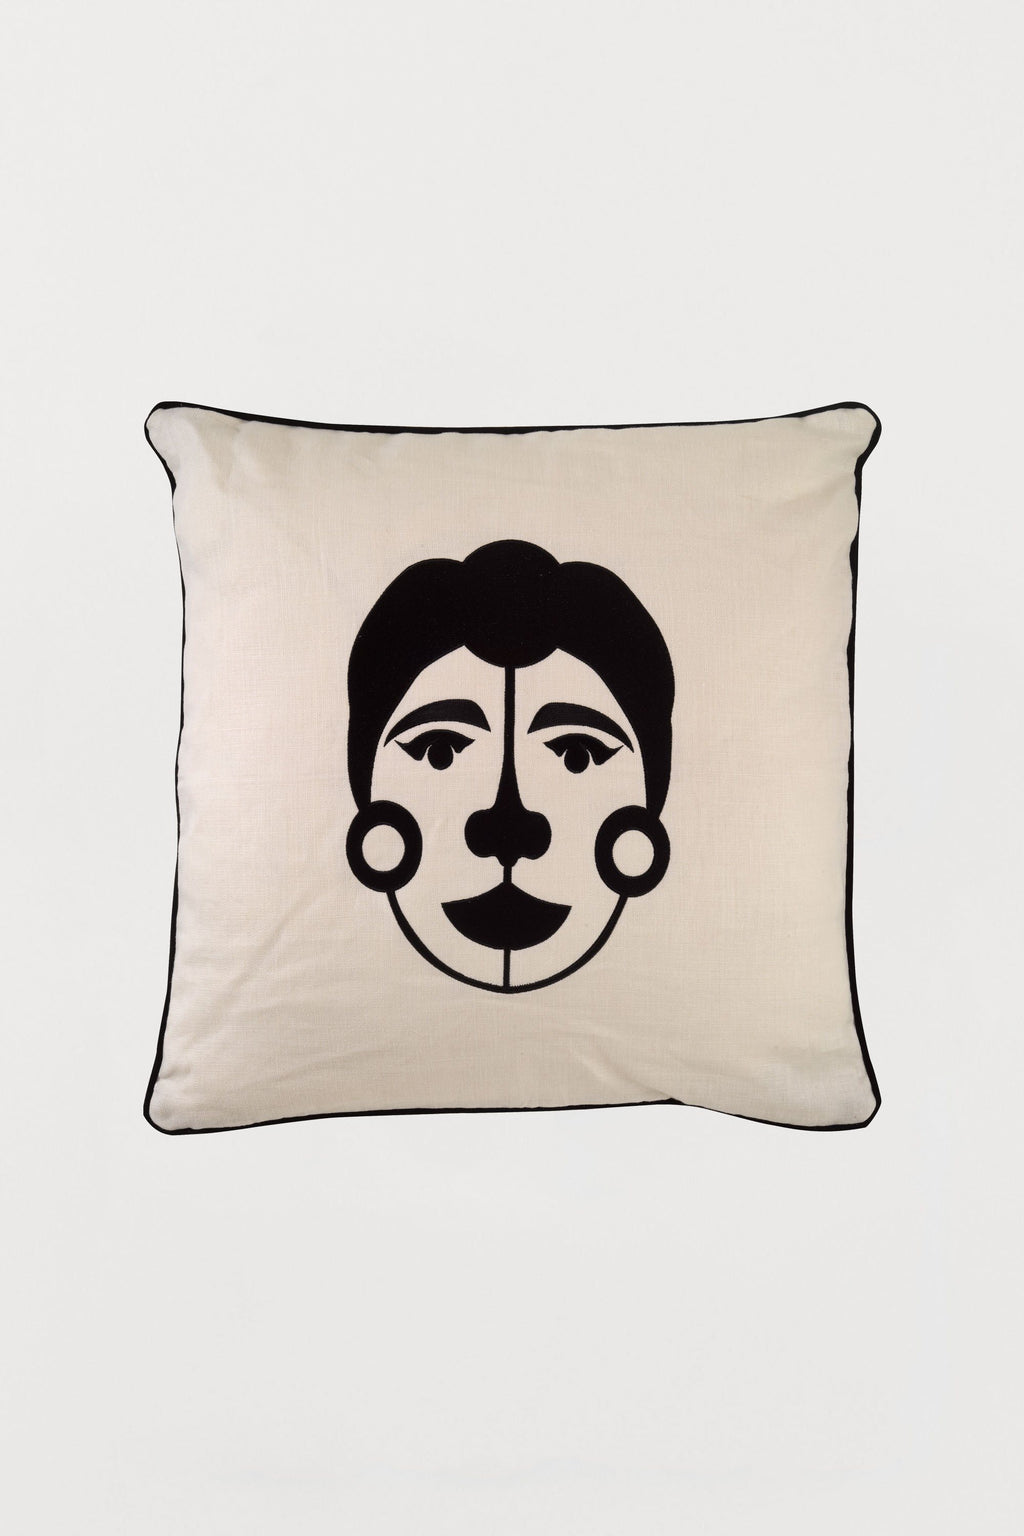 Embroidered Cushion Woman C - Bianca Elgar